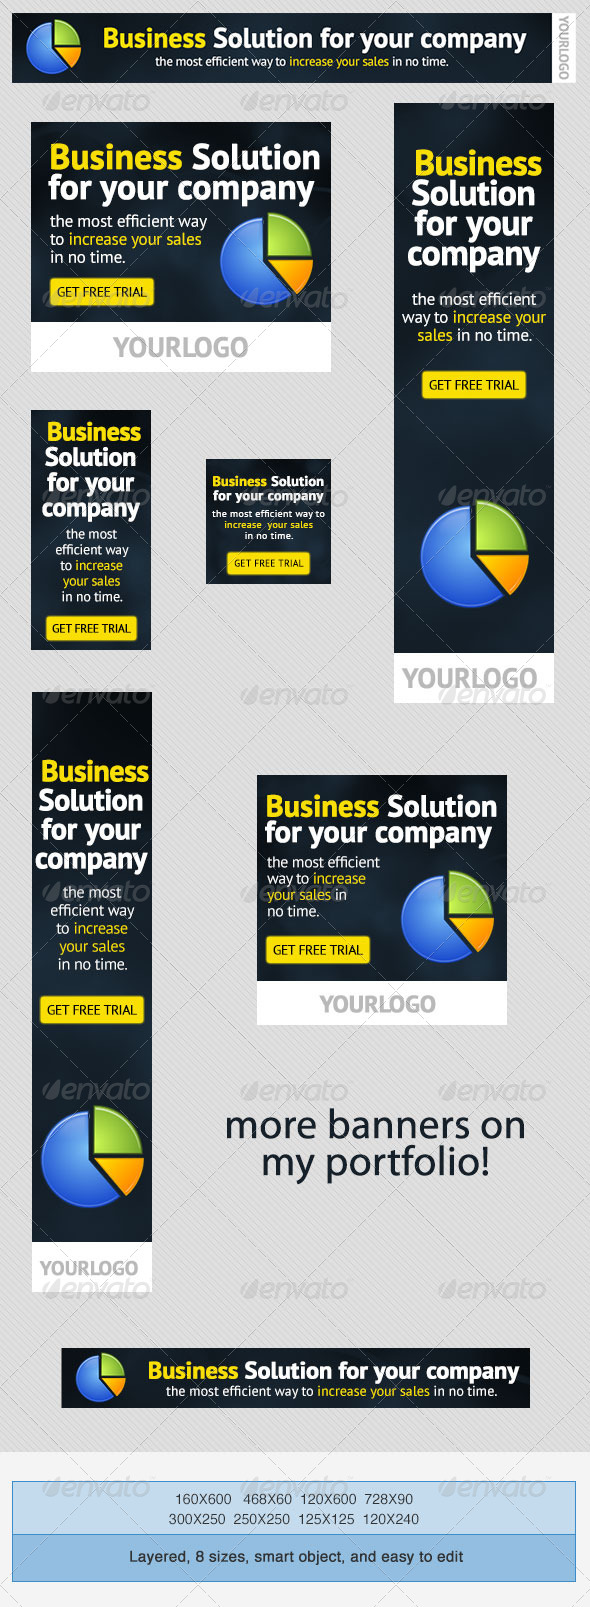 Corporate PSD Banner Ad Template 2 - Banners & Ads Web Elements